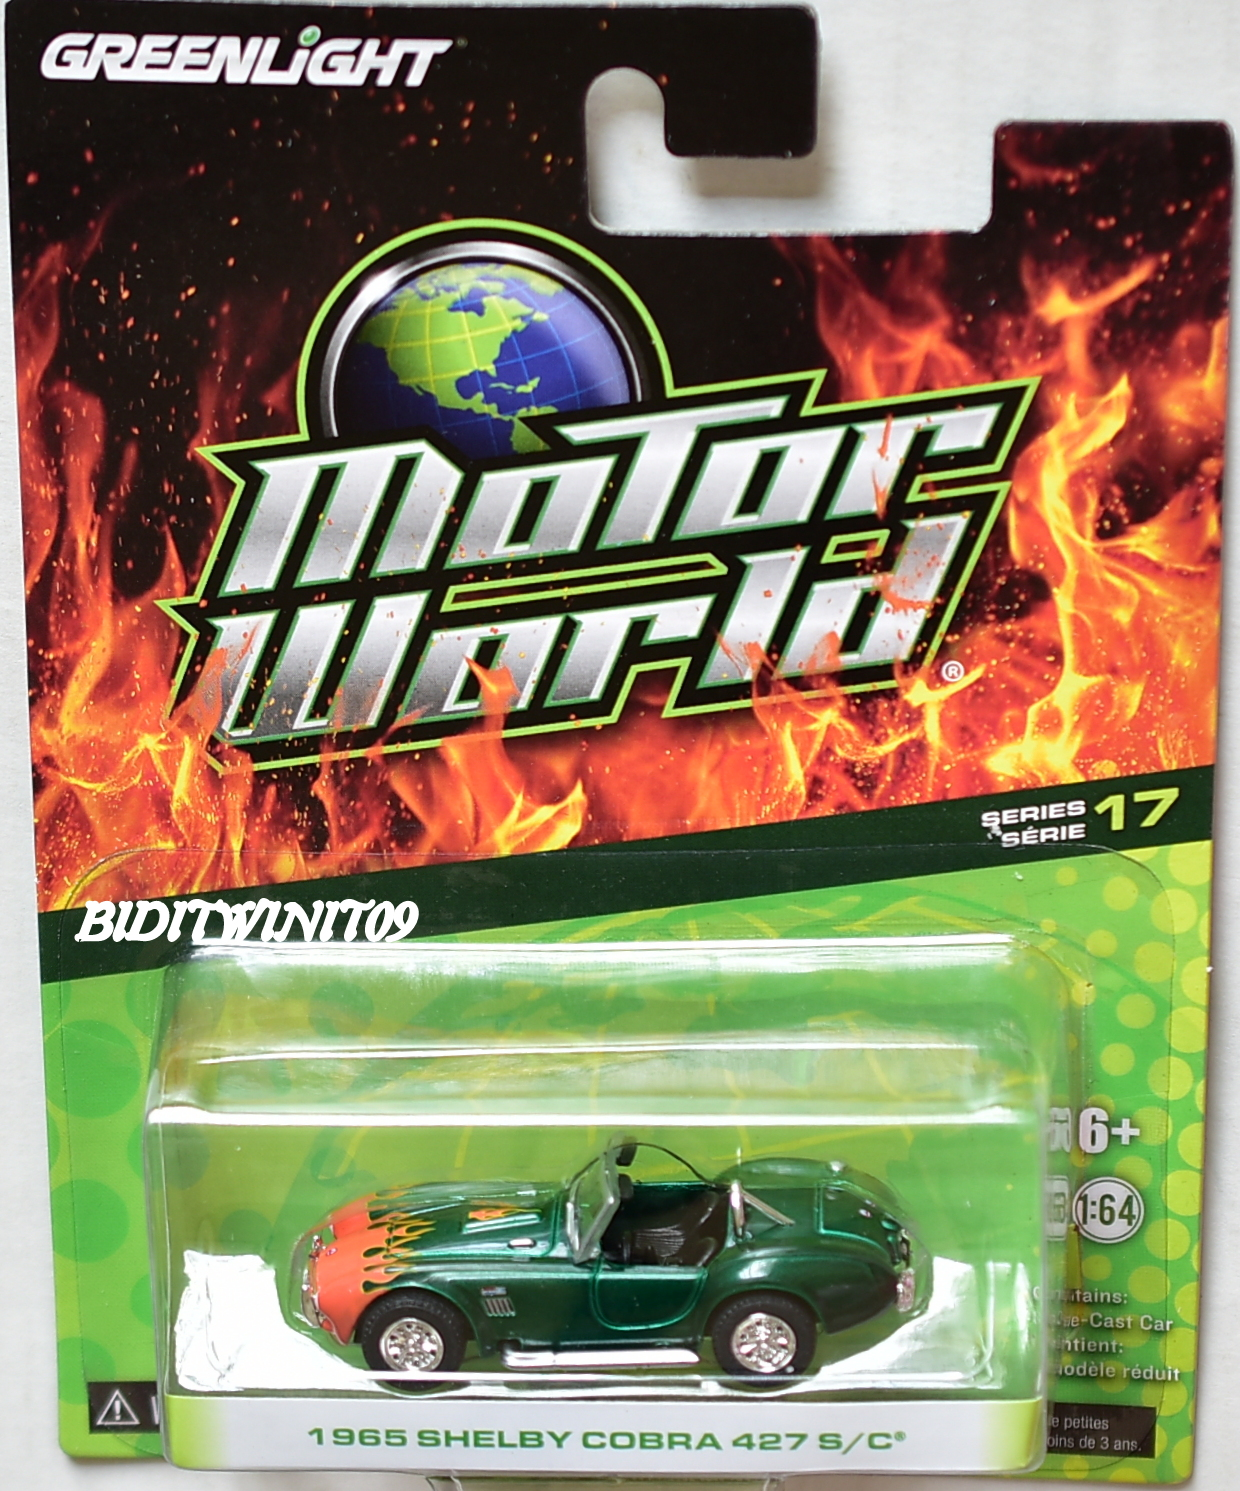 GREENLIGHT MOTOR WORLD SERIES 17 1965 SHELBY COBRA 427 S/C GREEN MACHINES E+